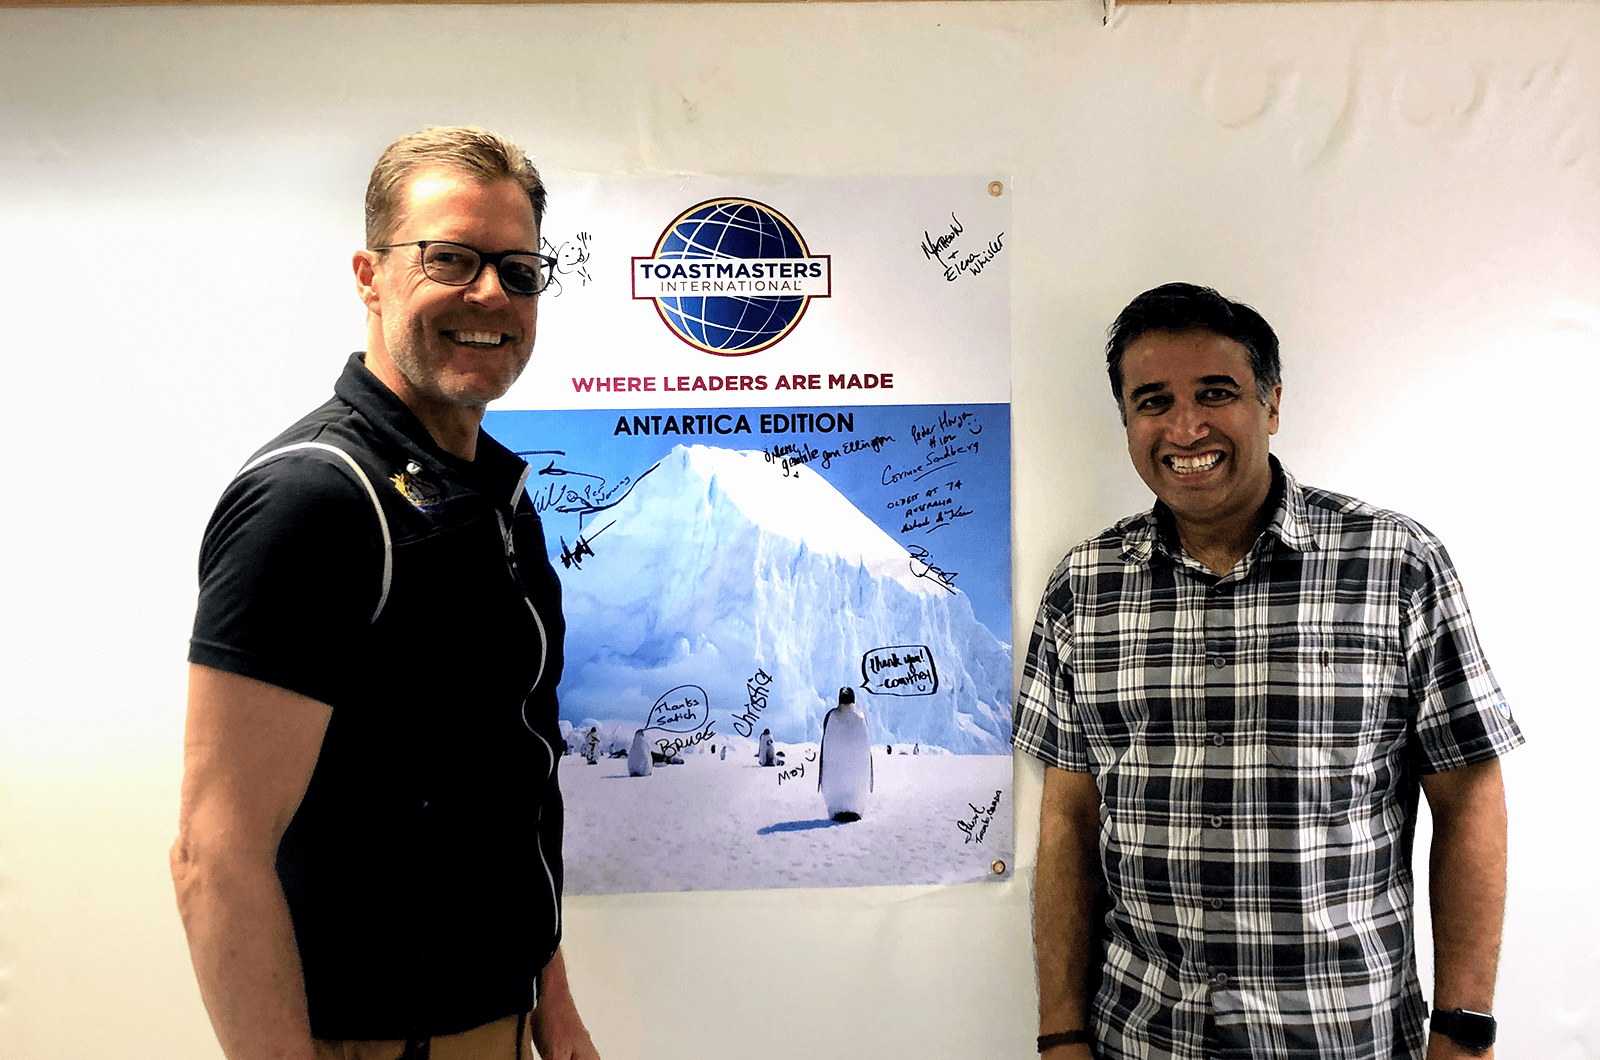 Satish (right) poses with a fellow marathon runner on the ship to Antarctica after holding a demo Toastmasters meeting.